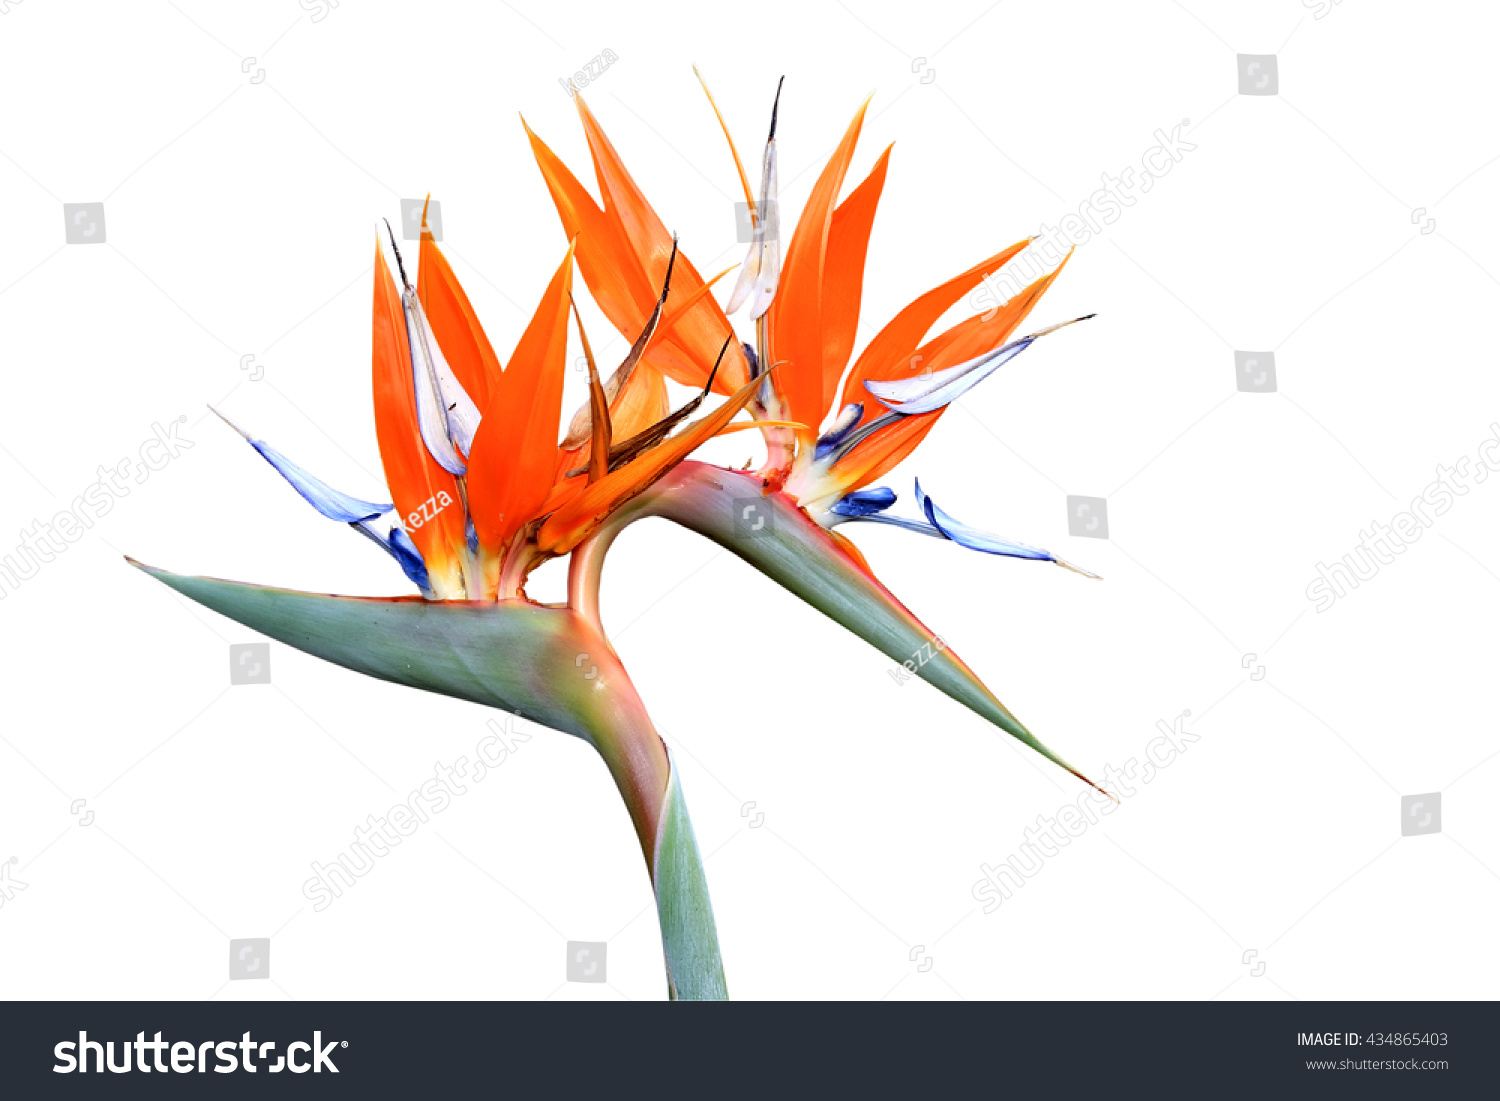 Double headed strelitzia bird paradise flower stock photo edit now double headed strelitzia or bird of paradise flower isolated on white background mightylinksfo